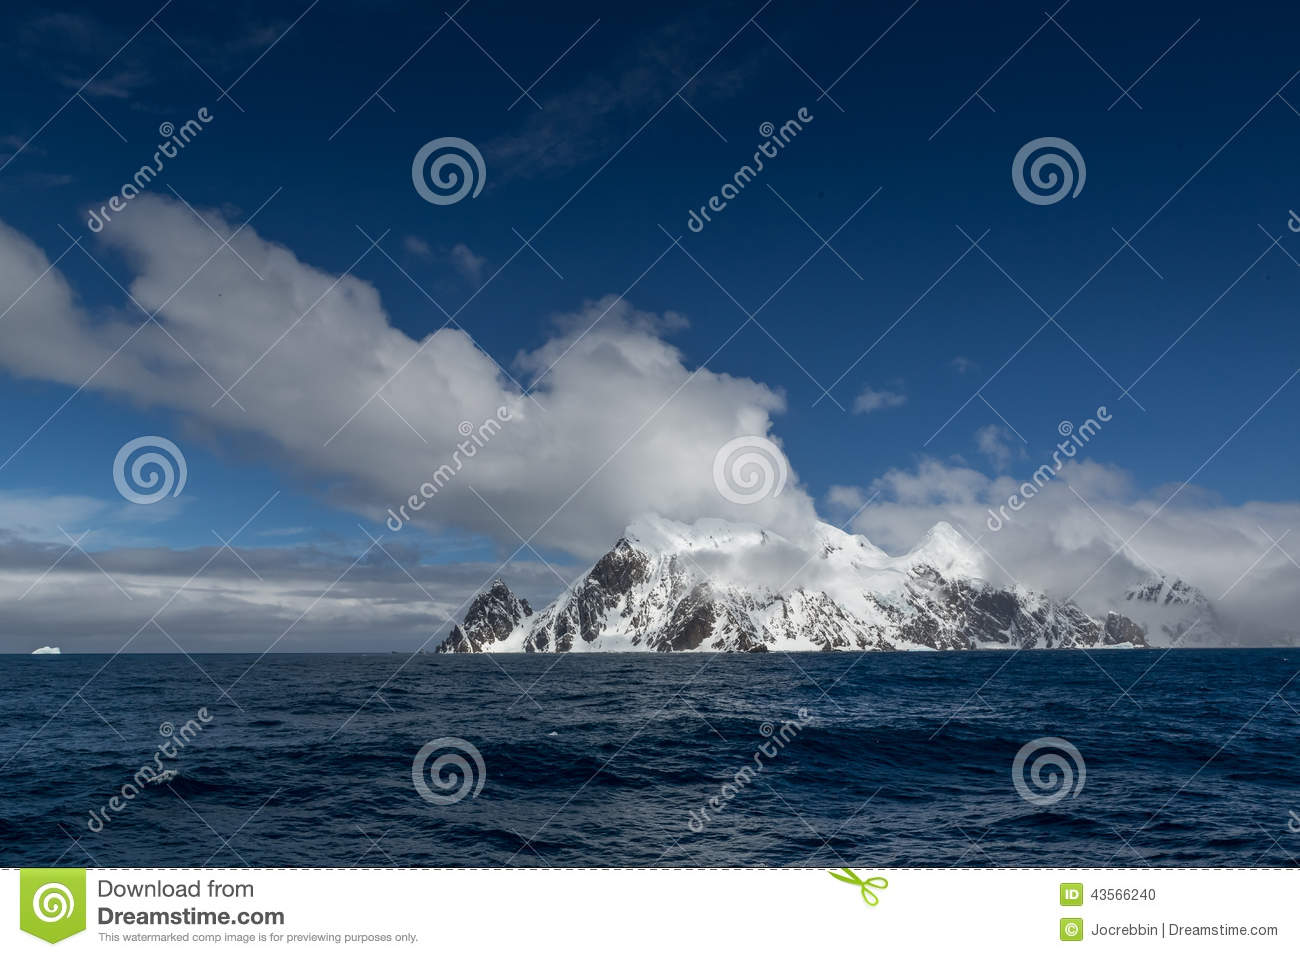 Elephant Island (South Shetland Islands) in the Southern Ocean. With Point Wild, location of Sir Ernest Shackleton amazing